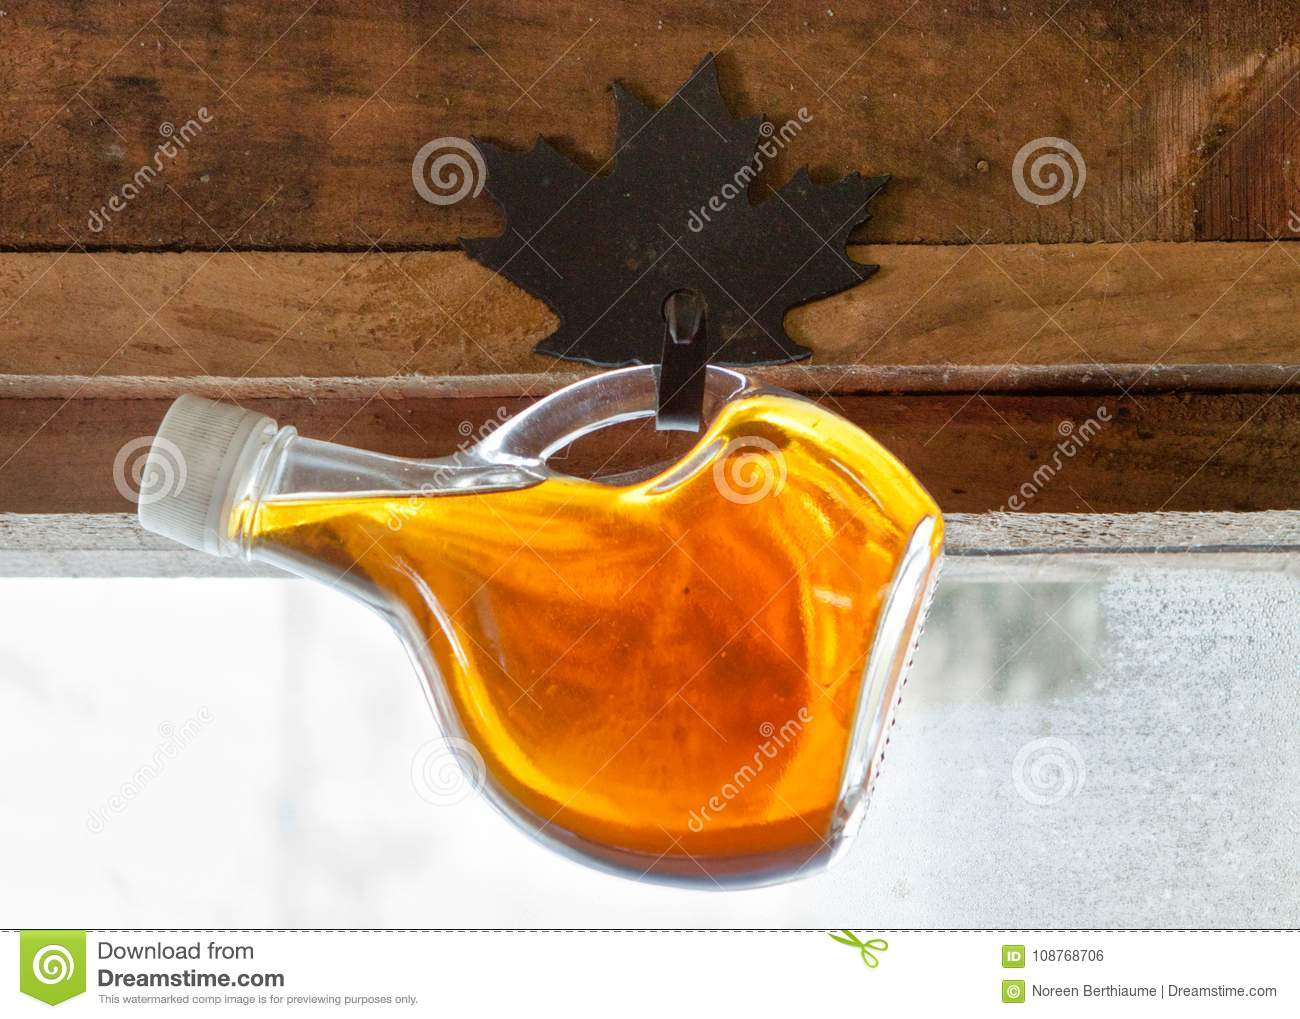 Hanging Bottle of Maple Syrup